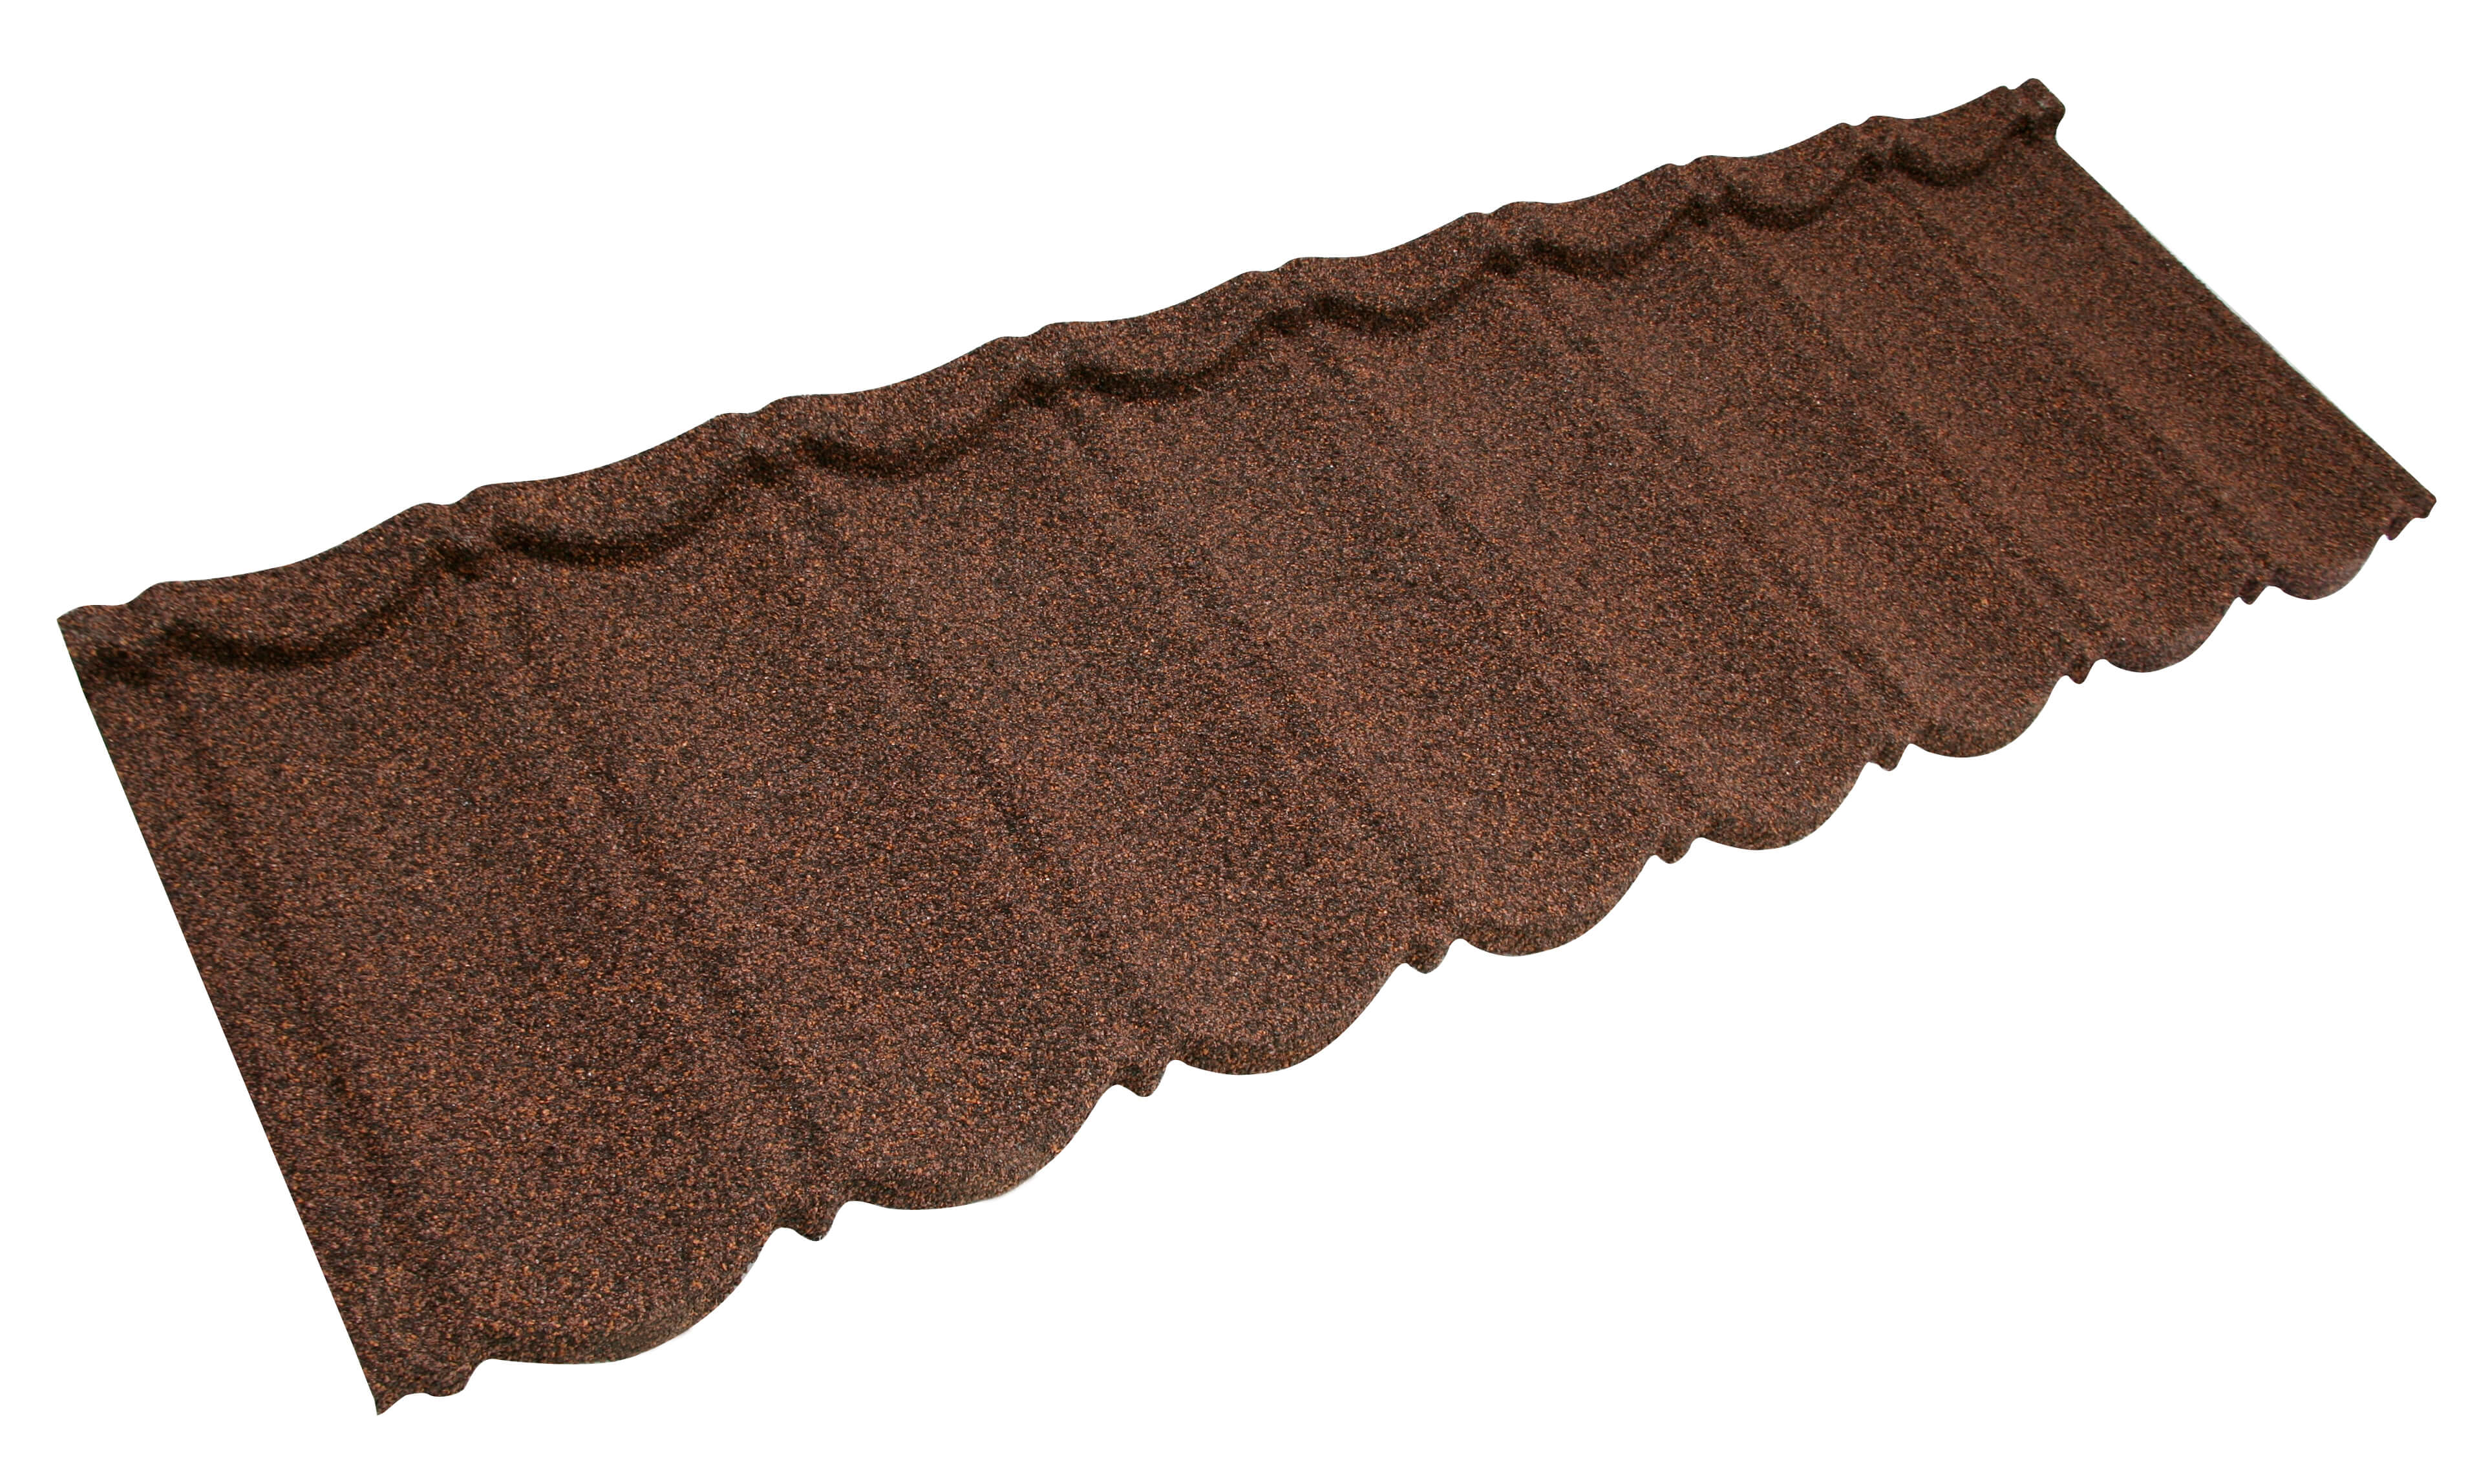 Metrotile Bond Lightweight Roofing Tile Profile in Bronze